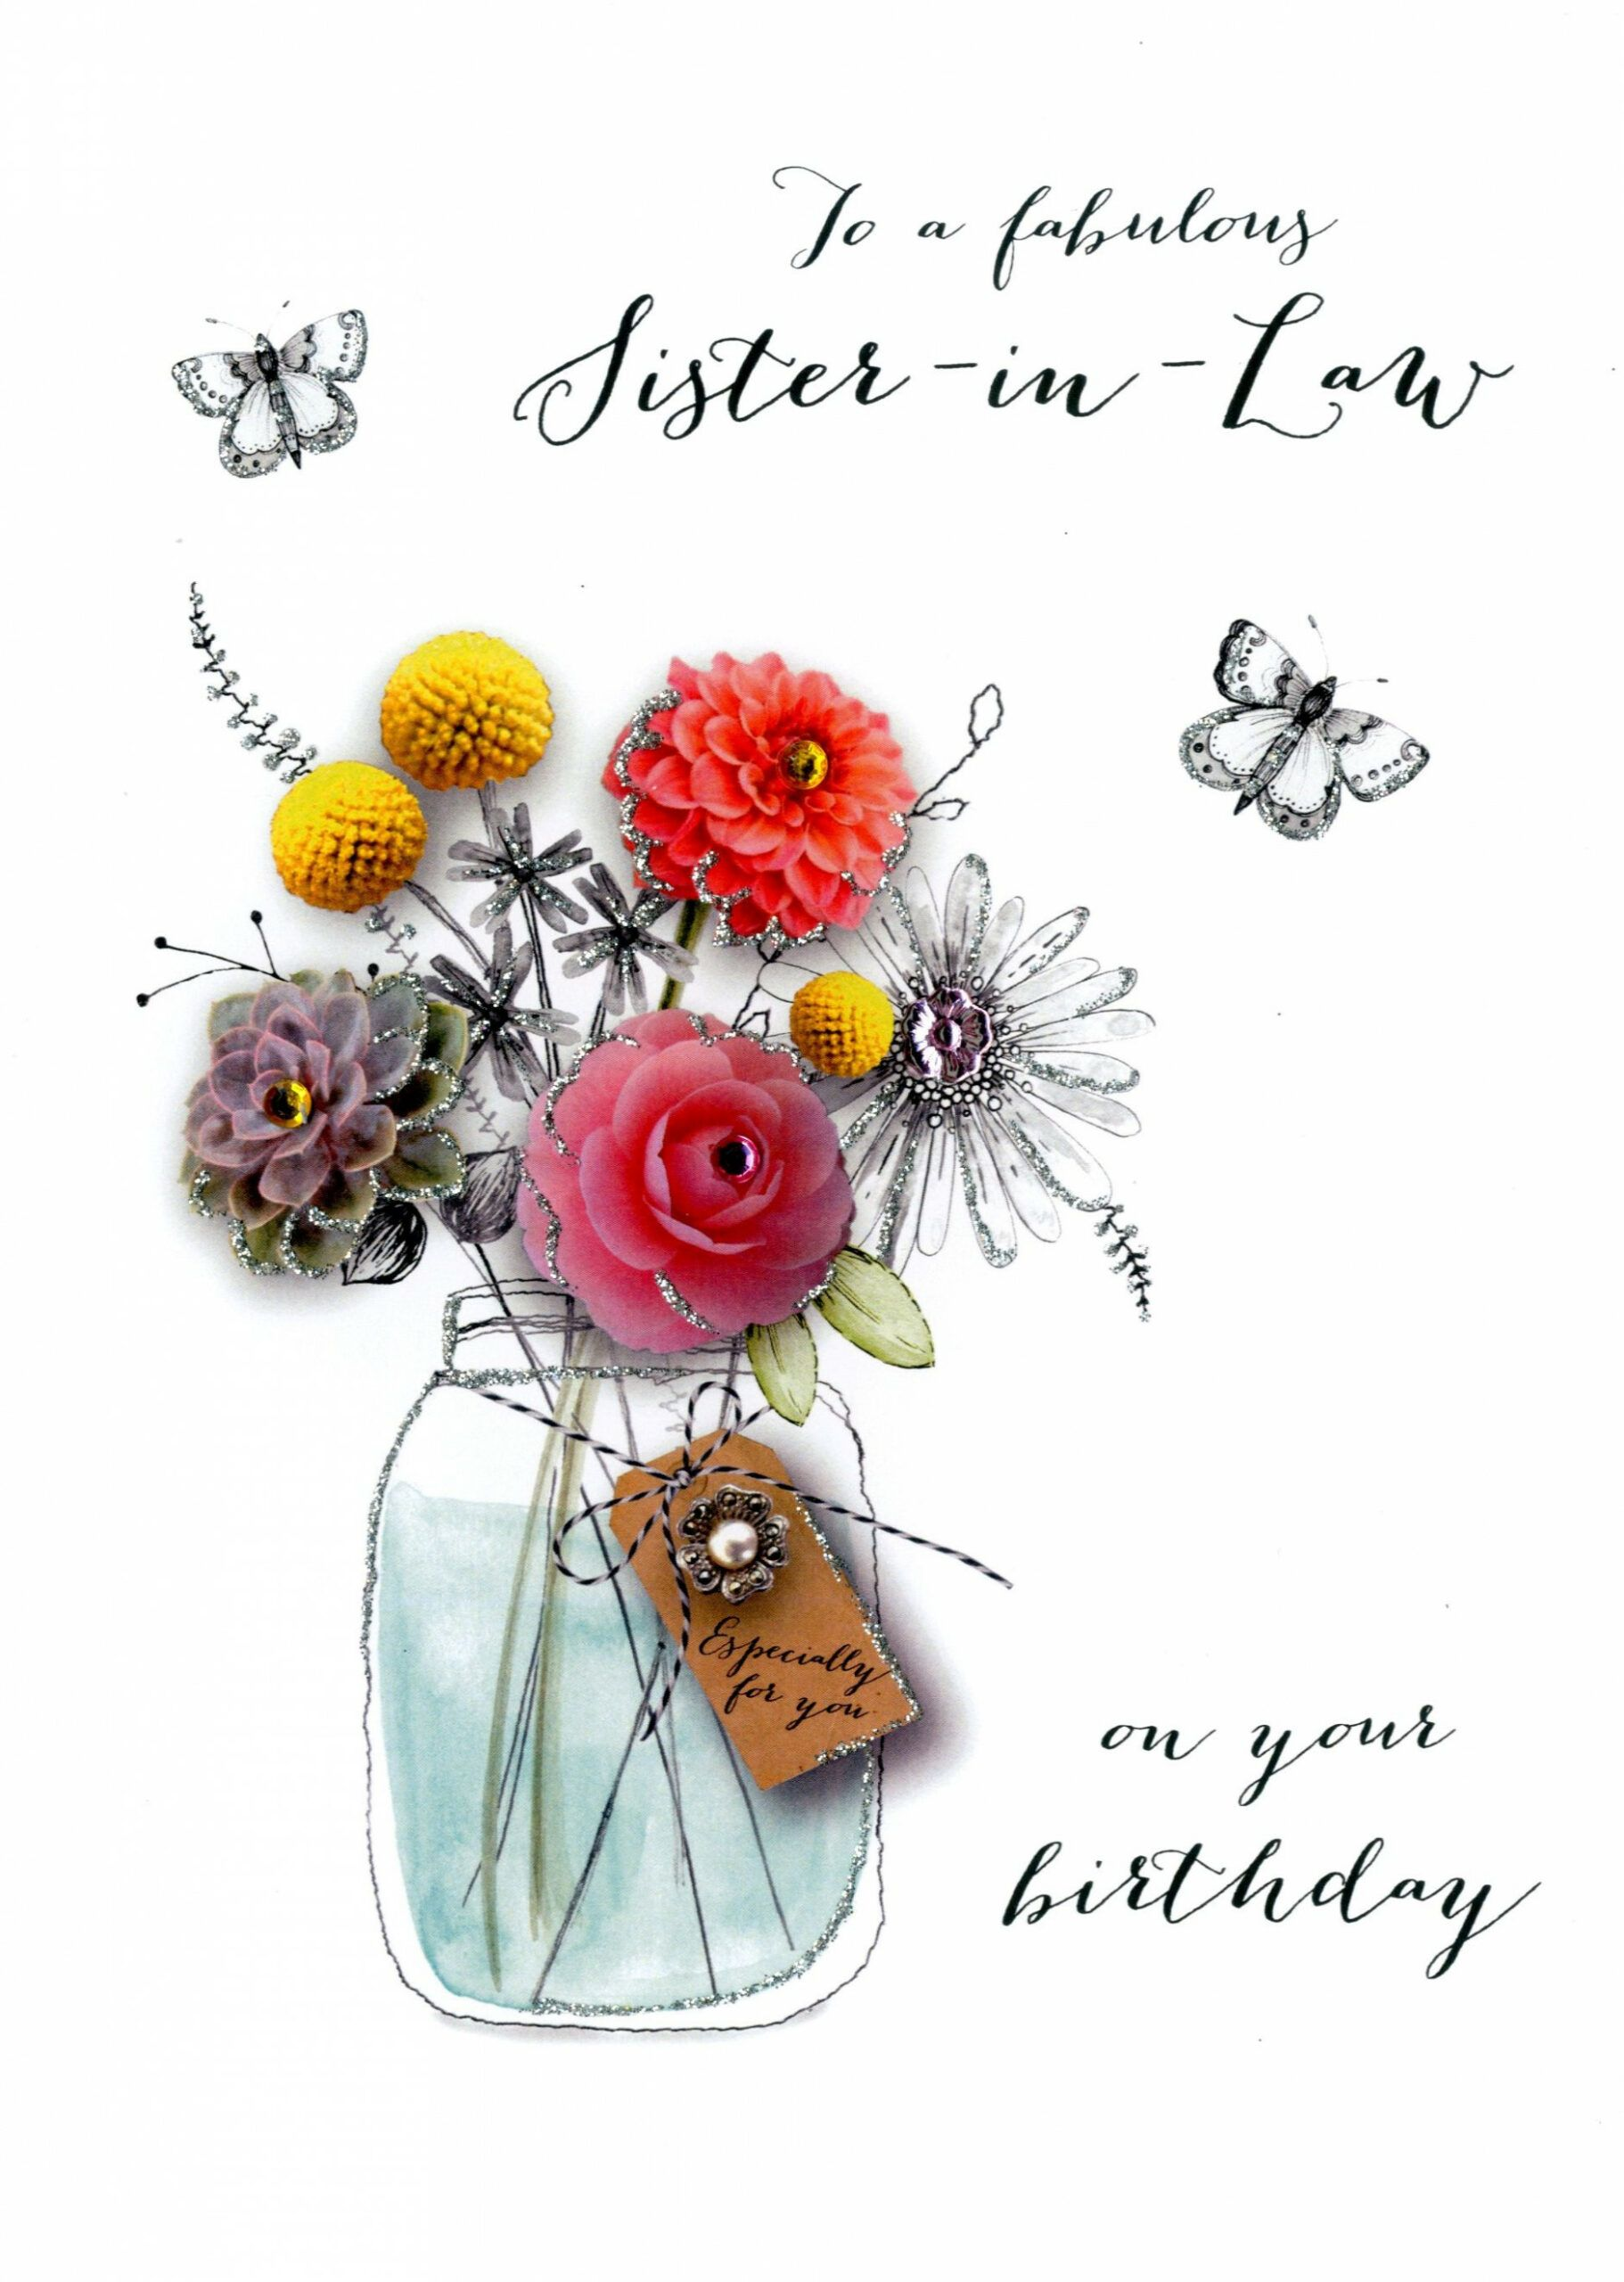 7 Birthday Card Ideas For Sister In Law in 2020 Sister